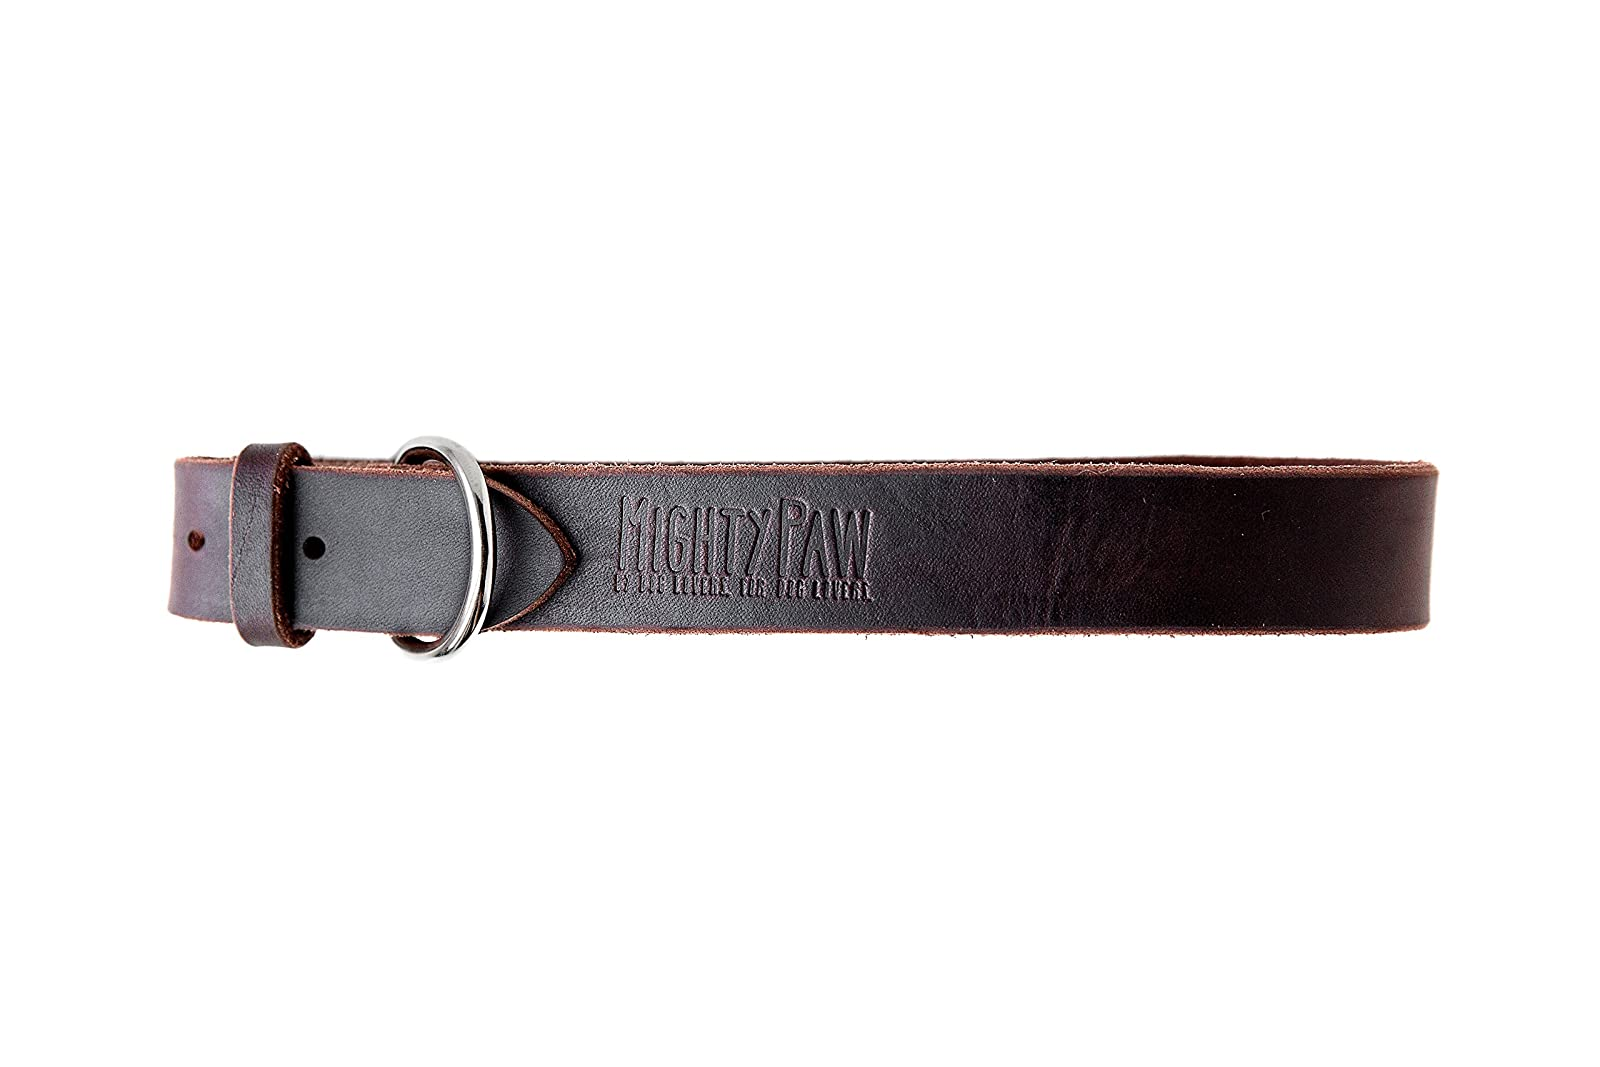 Mighty Paw Leather Dog Collar Super Soft Brown - 8